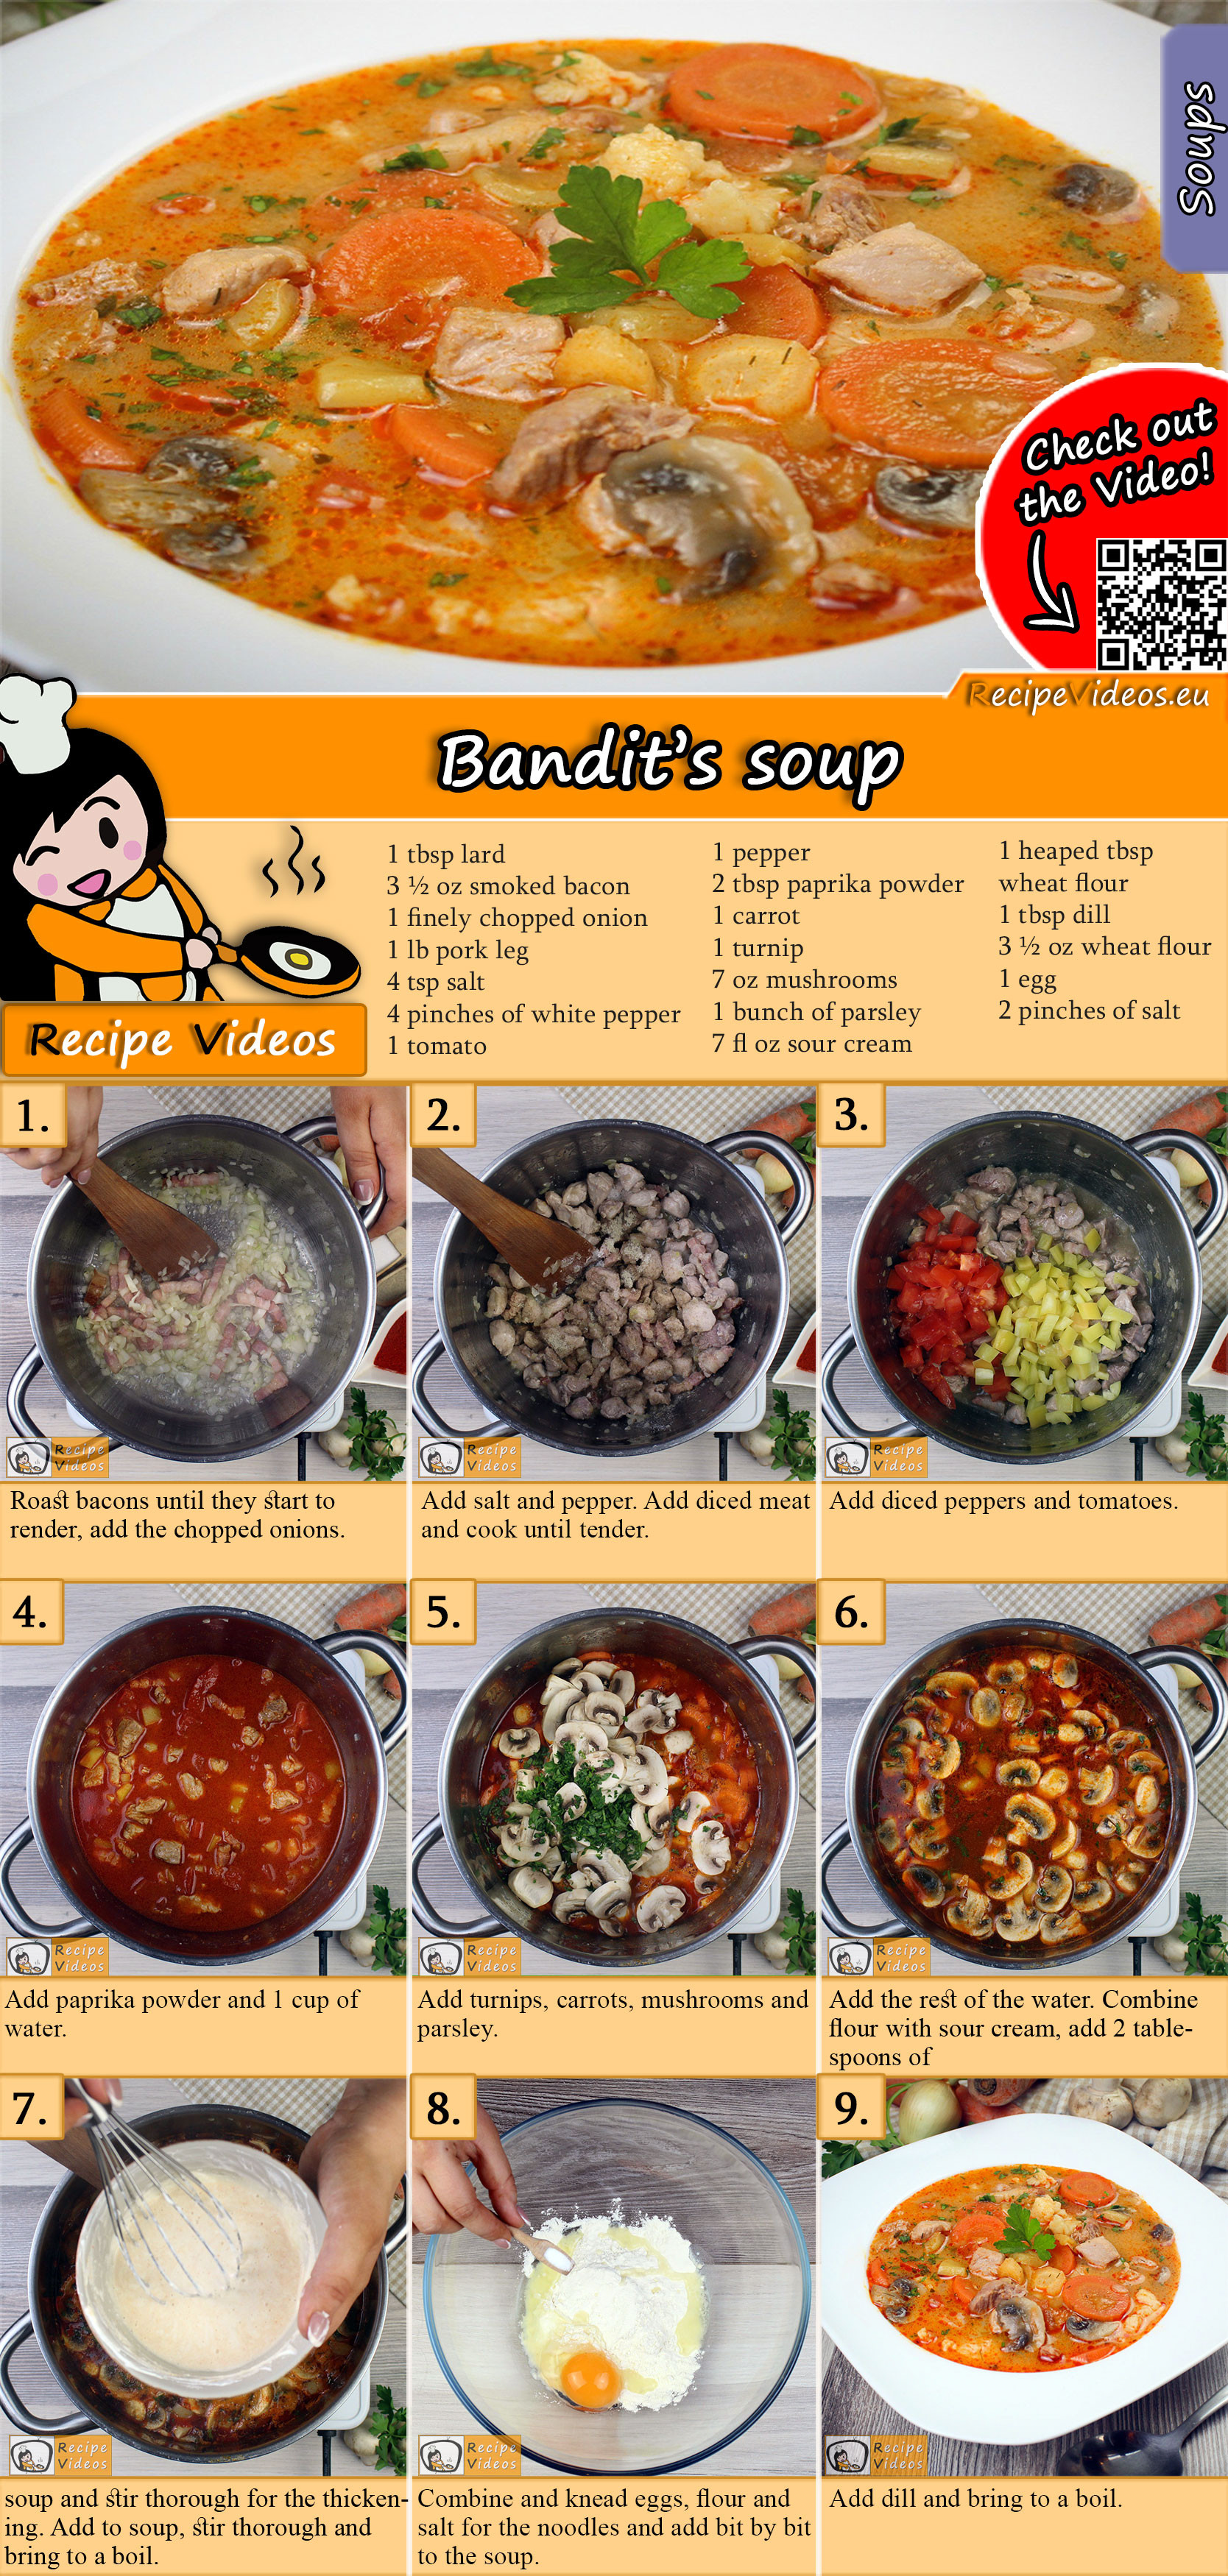 Bandit's soup recipe with video